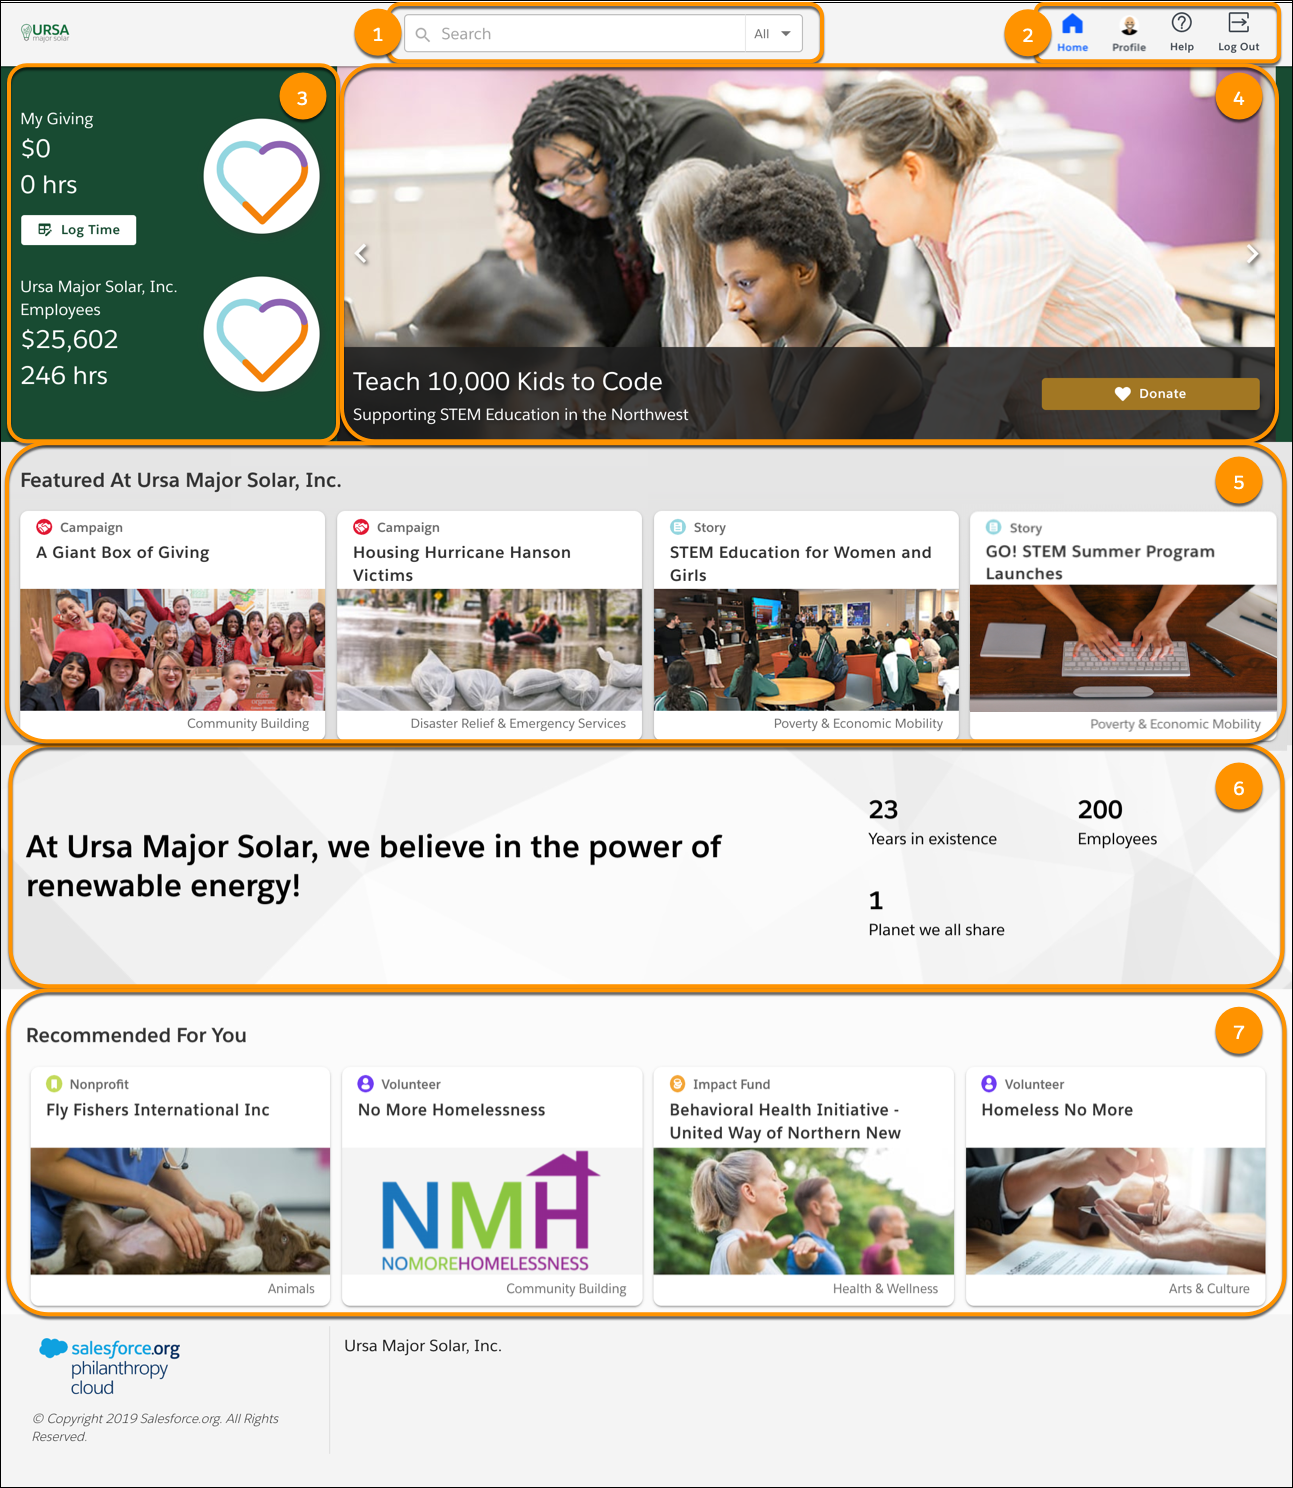 Full page display of a Philanthropy Cloud website